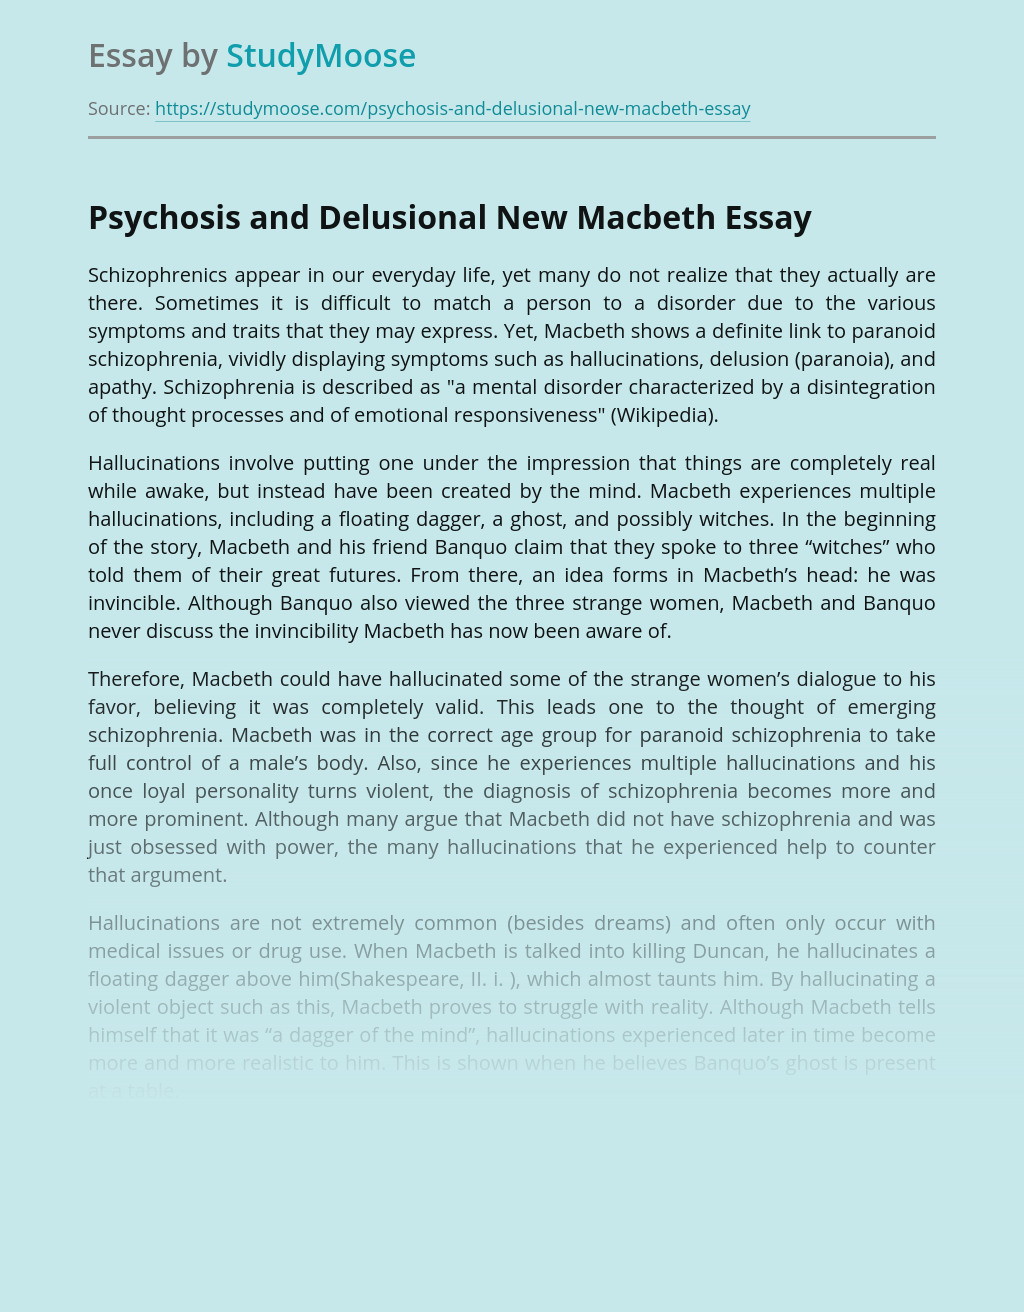 Psychosis and Delusional New Macbeth